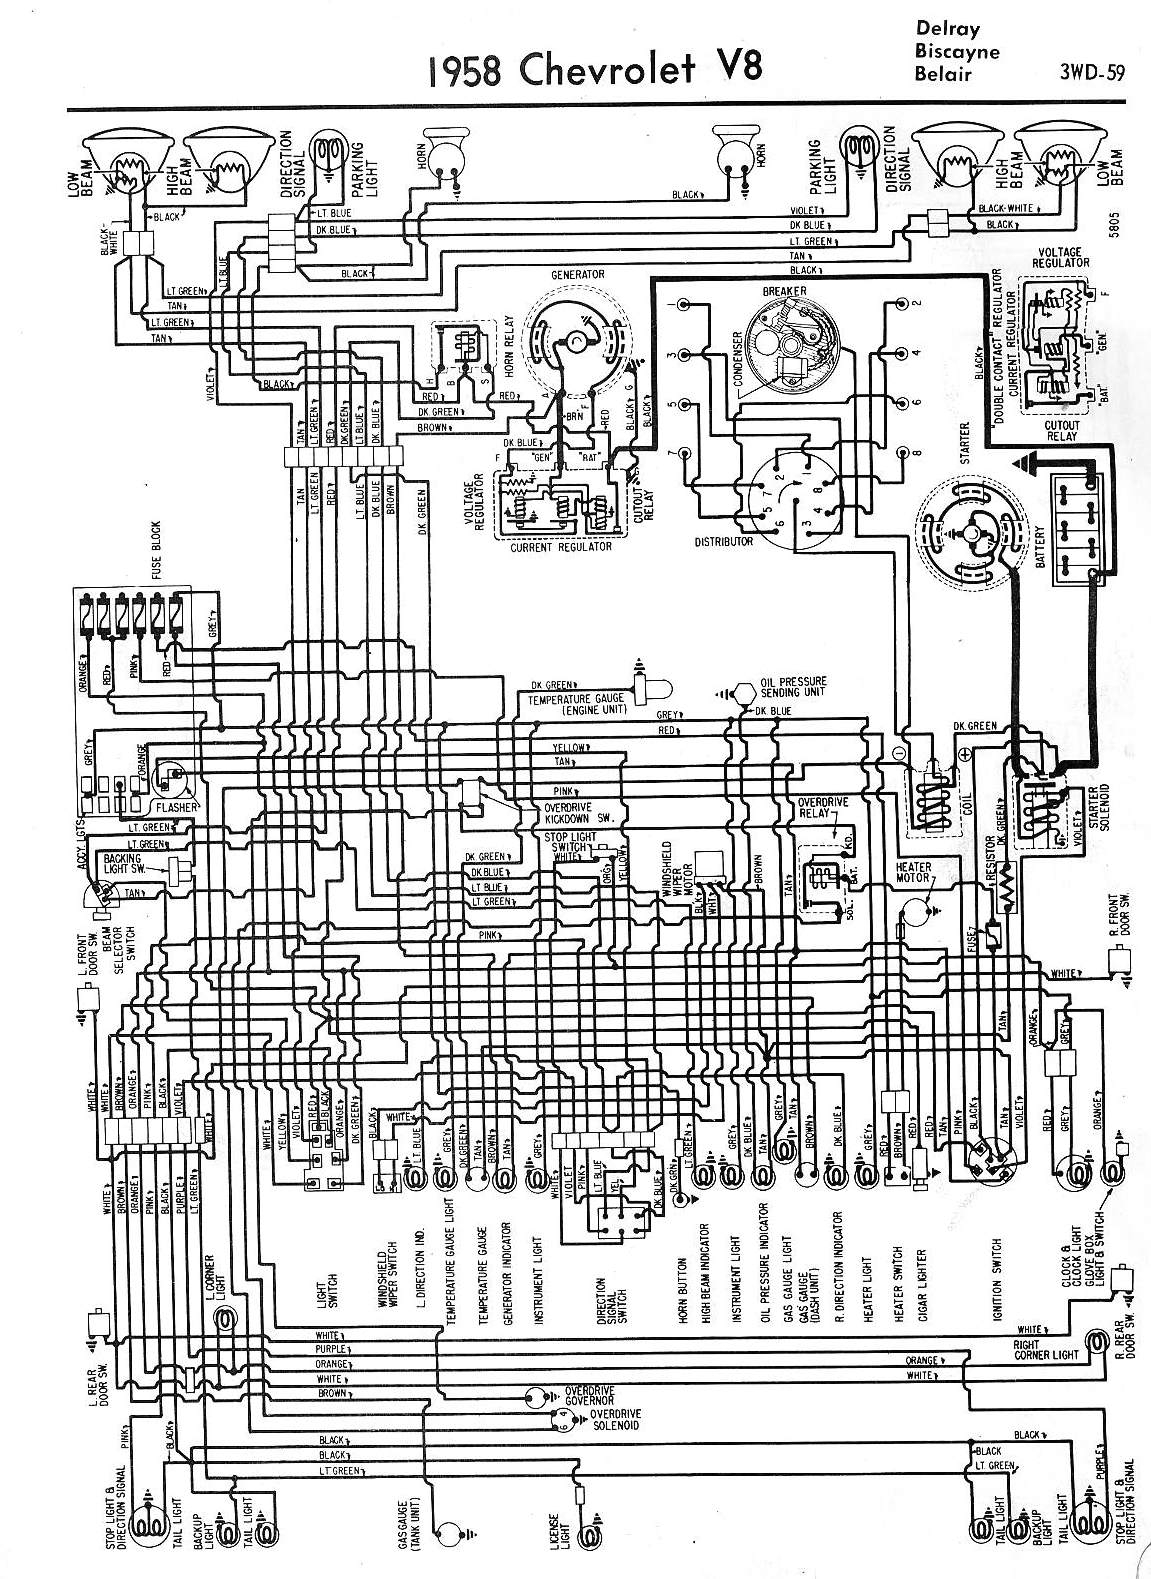 2003 Chevy Impala Wiring Diagram